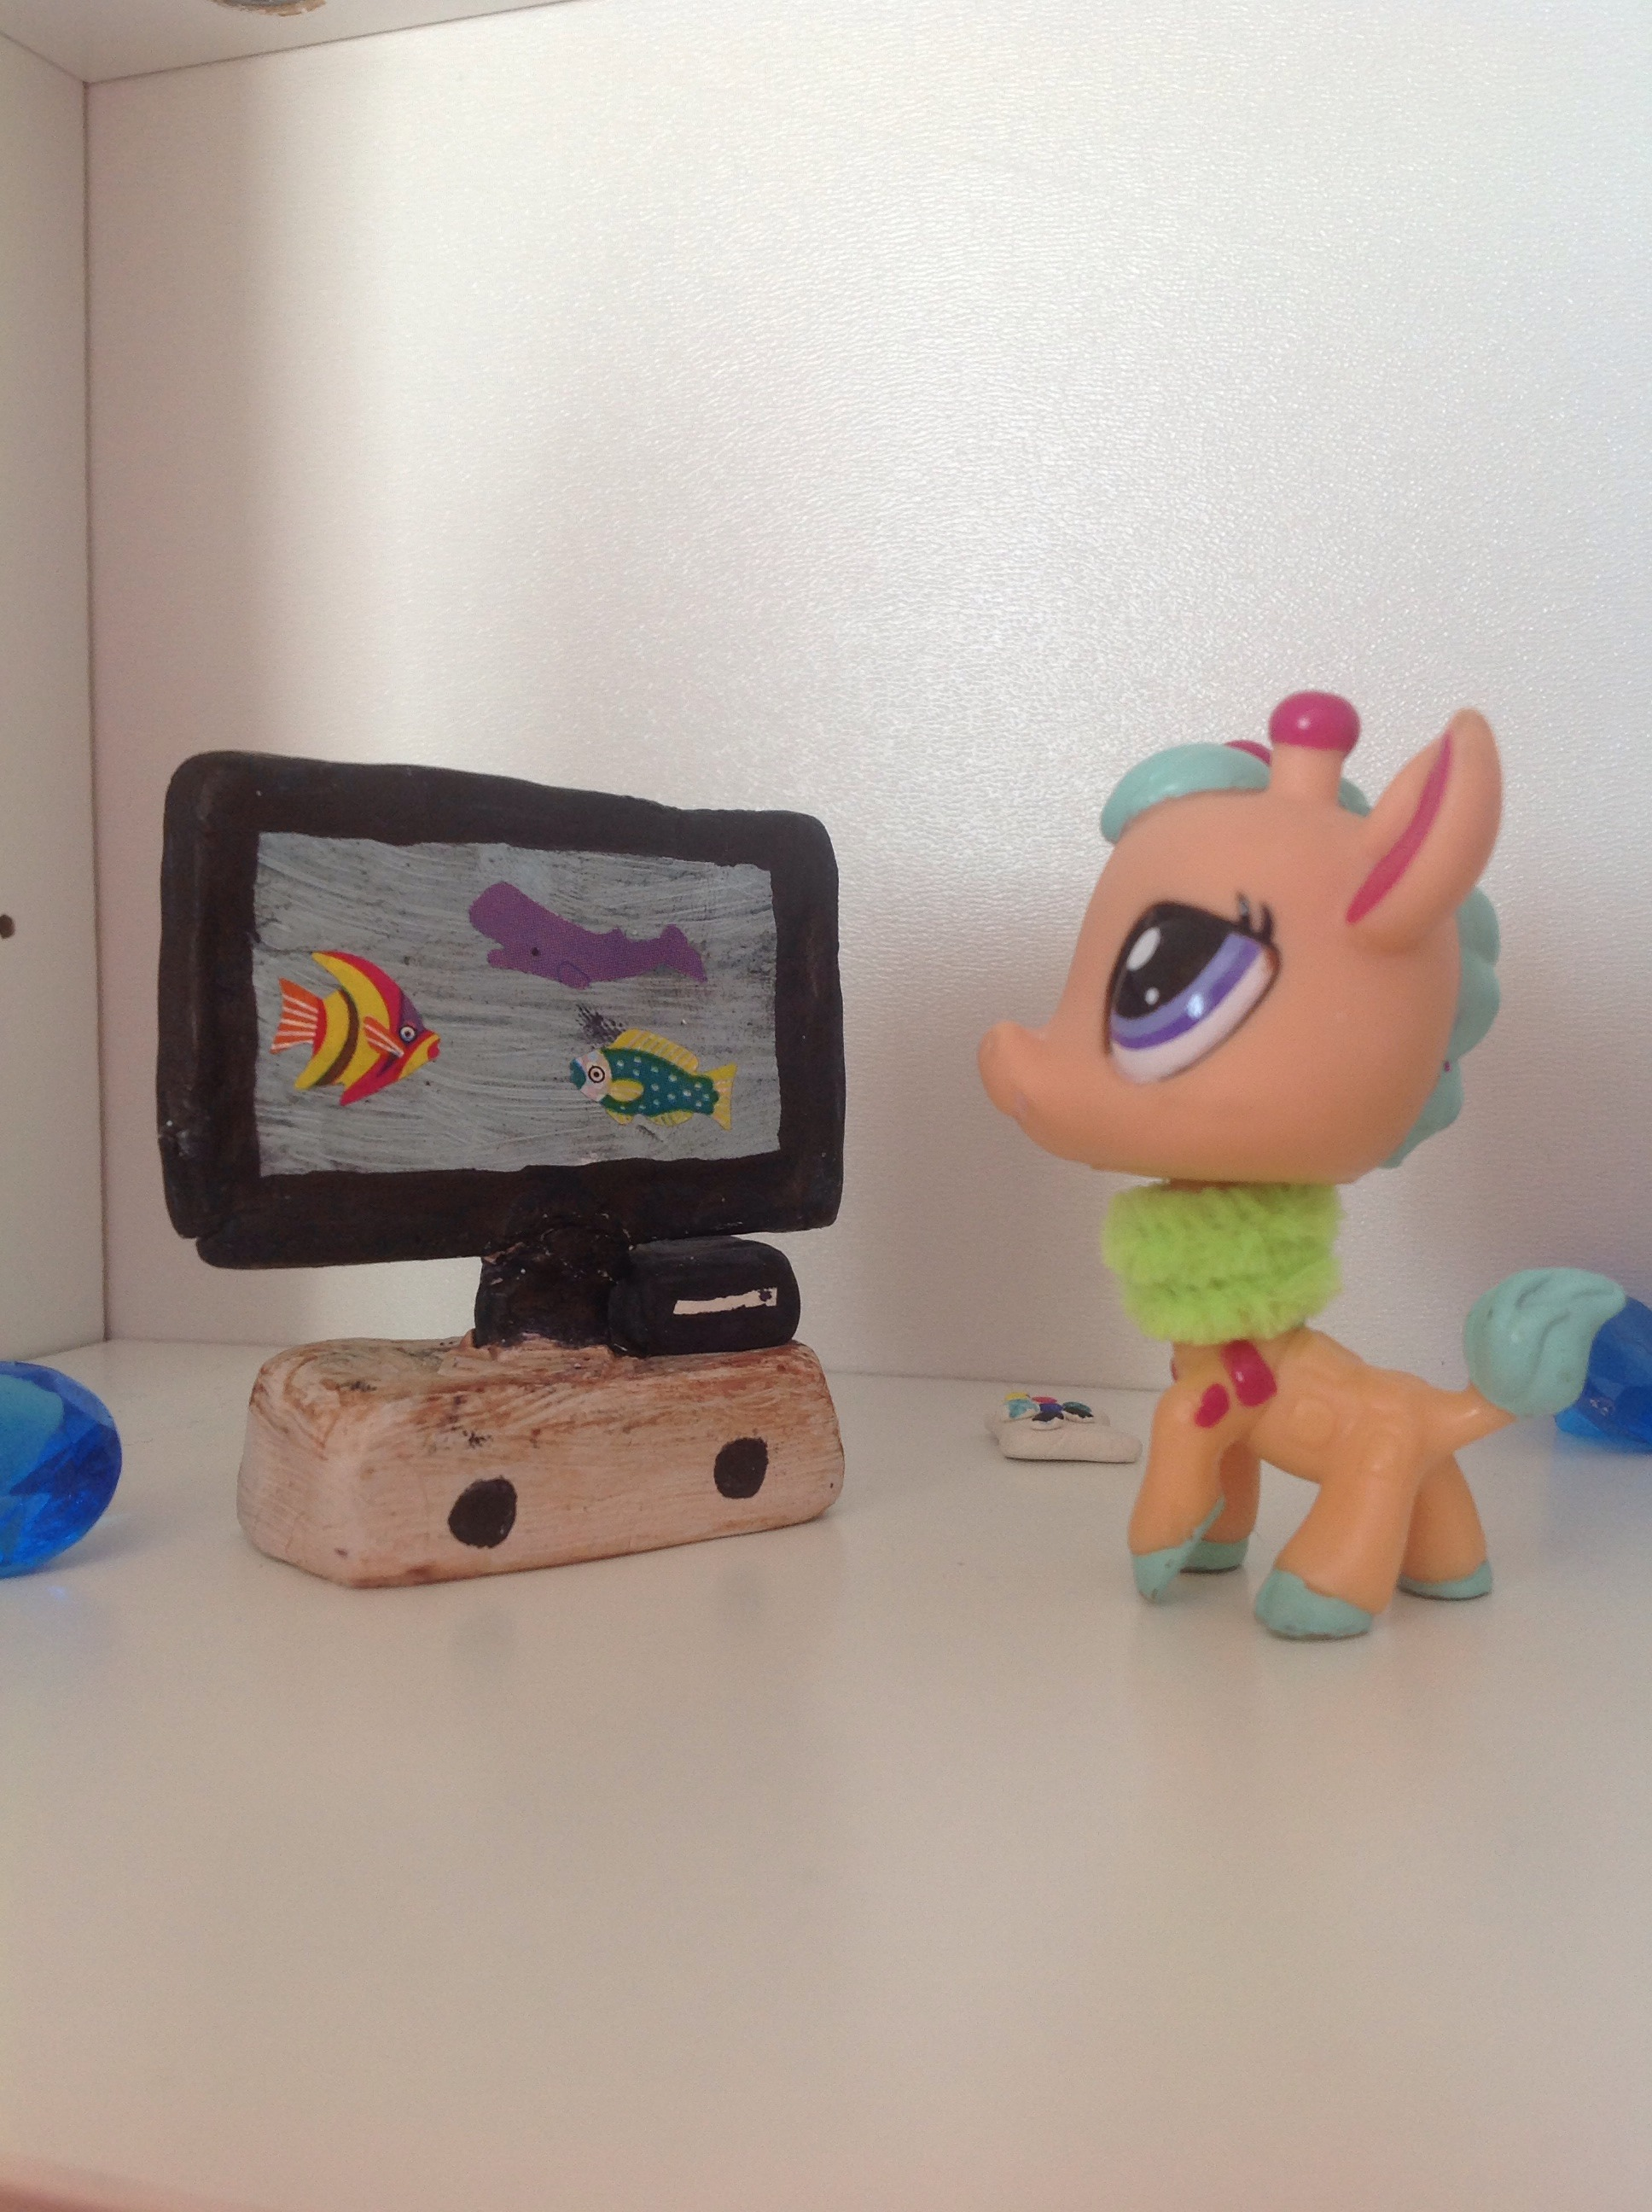 Mini Tv For Small Dolls And Littlest Pet Shops